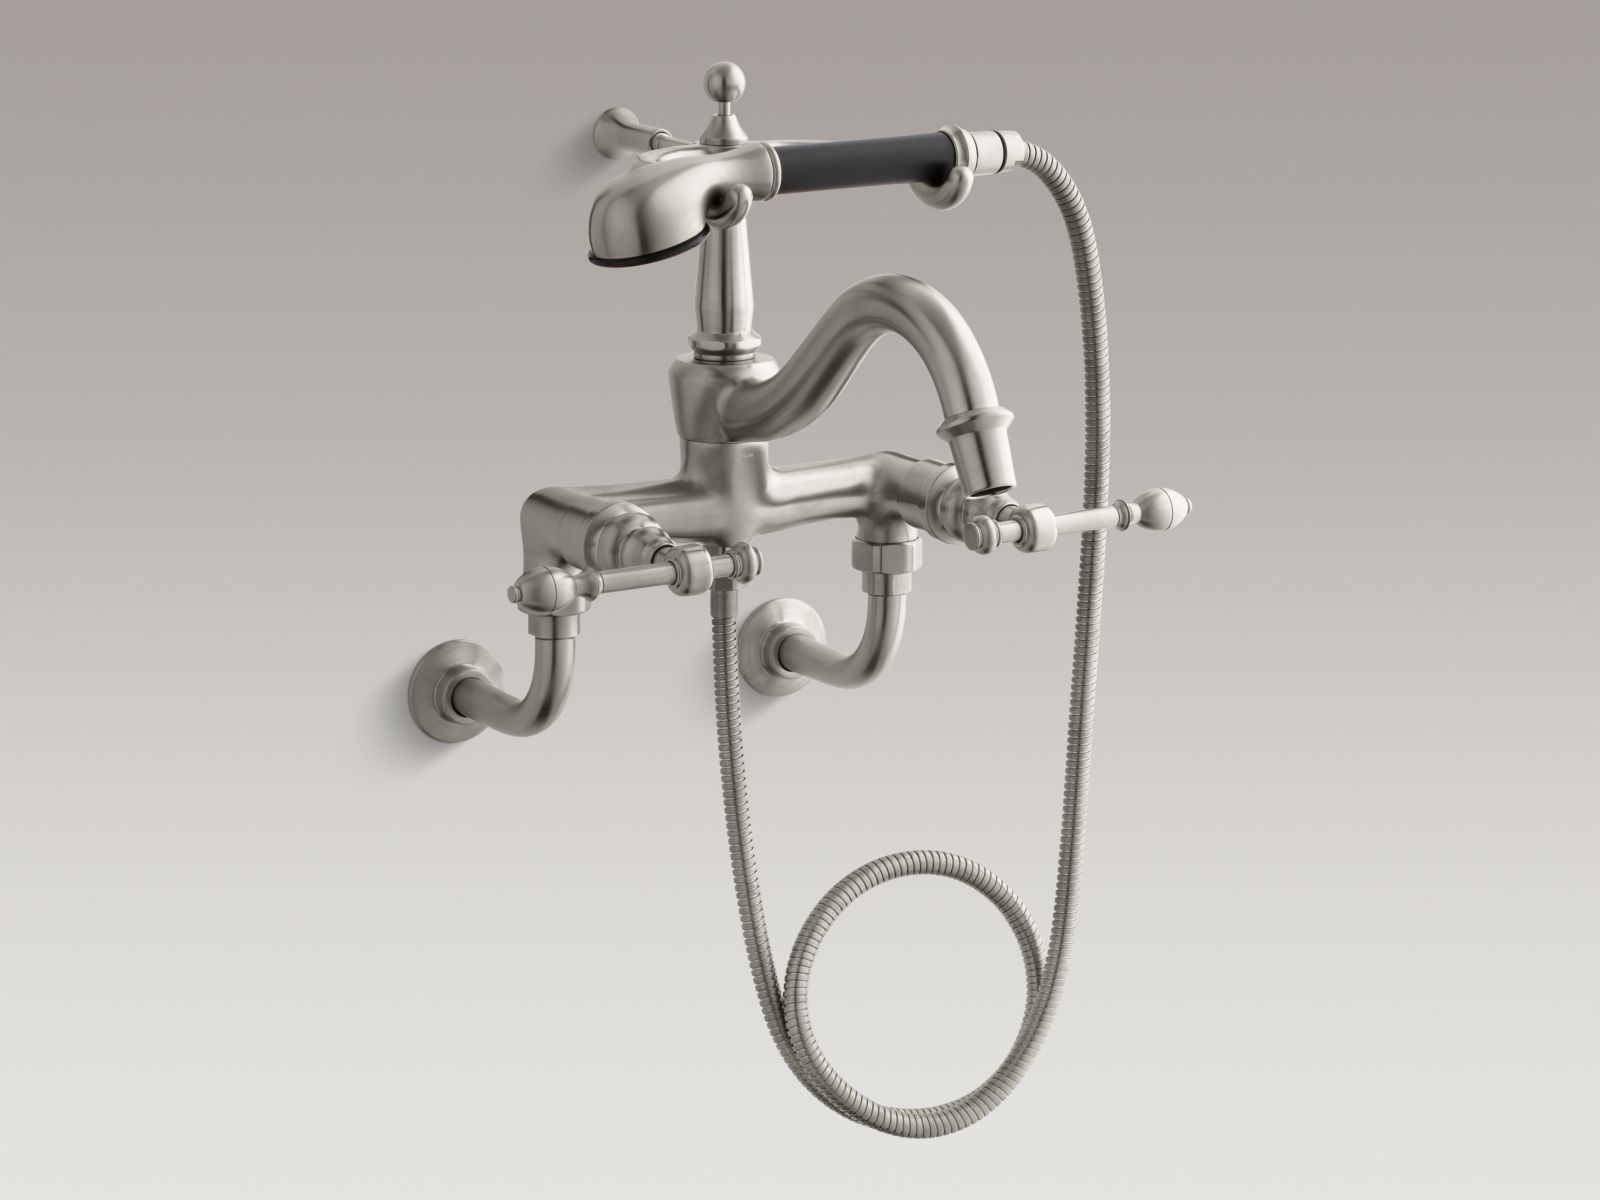 Kohler K-6905-4-BN IV Georges Brass Bathtub Filler with Handshower, Diverter Spout, and Lever Handles Vibrant Brushed Nickel